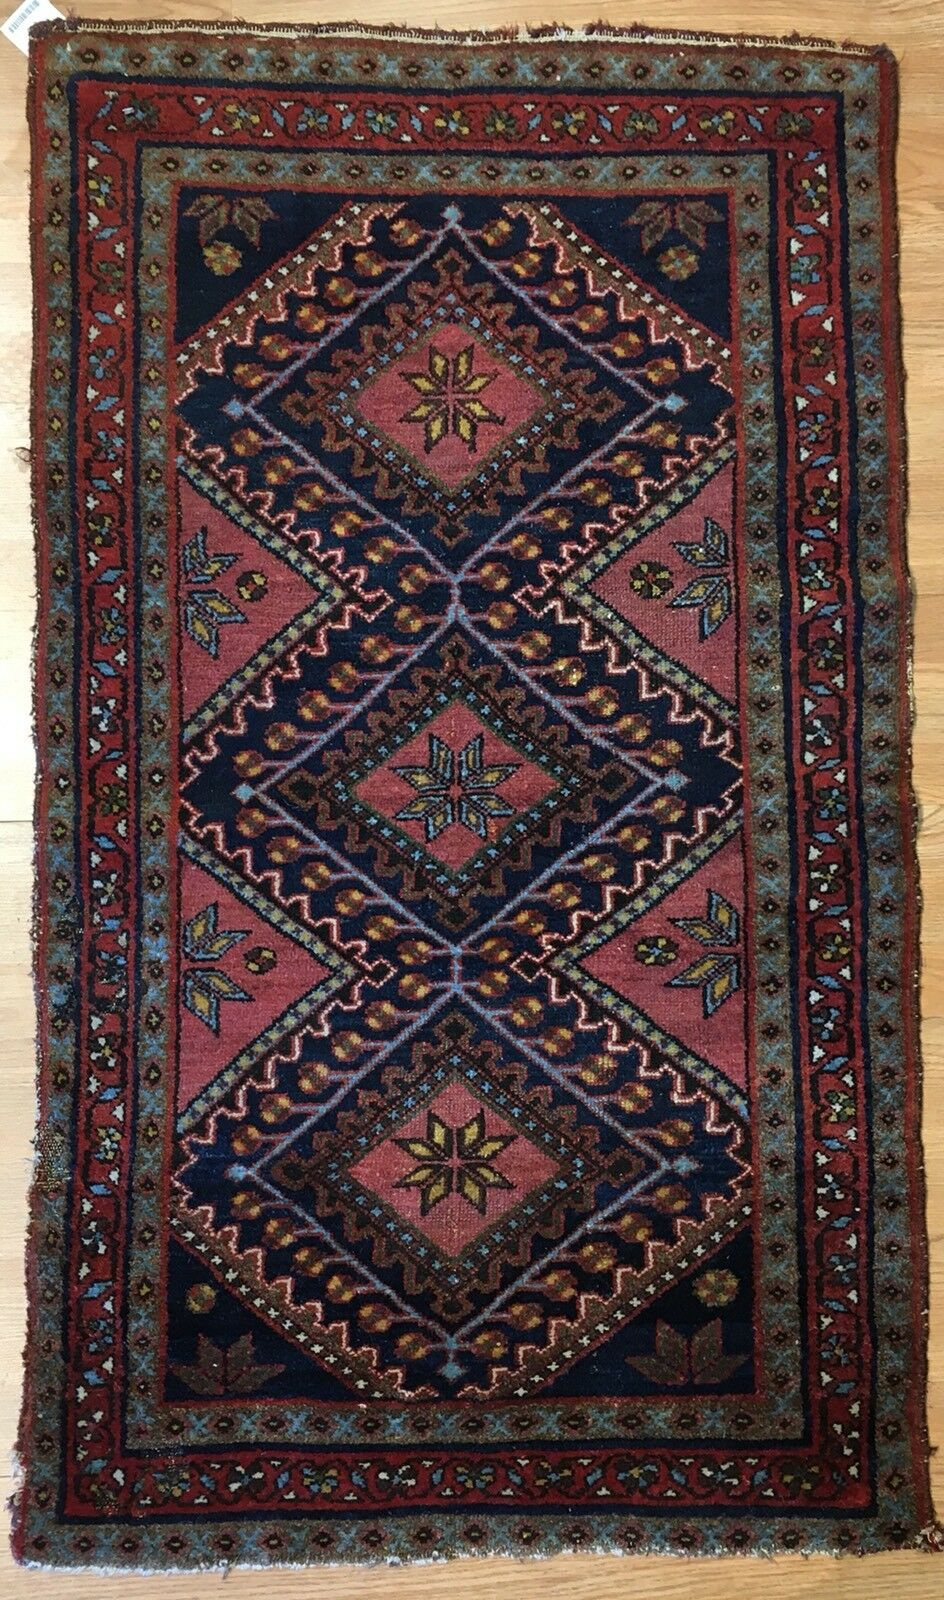 Marvelous Malayer - 1930s Antique Persian Rug - Tribal Carpet - 2'6